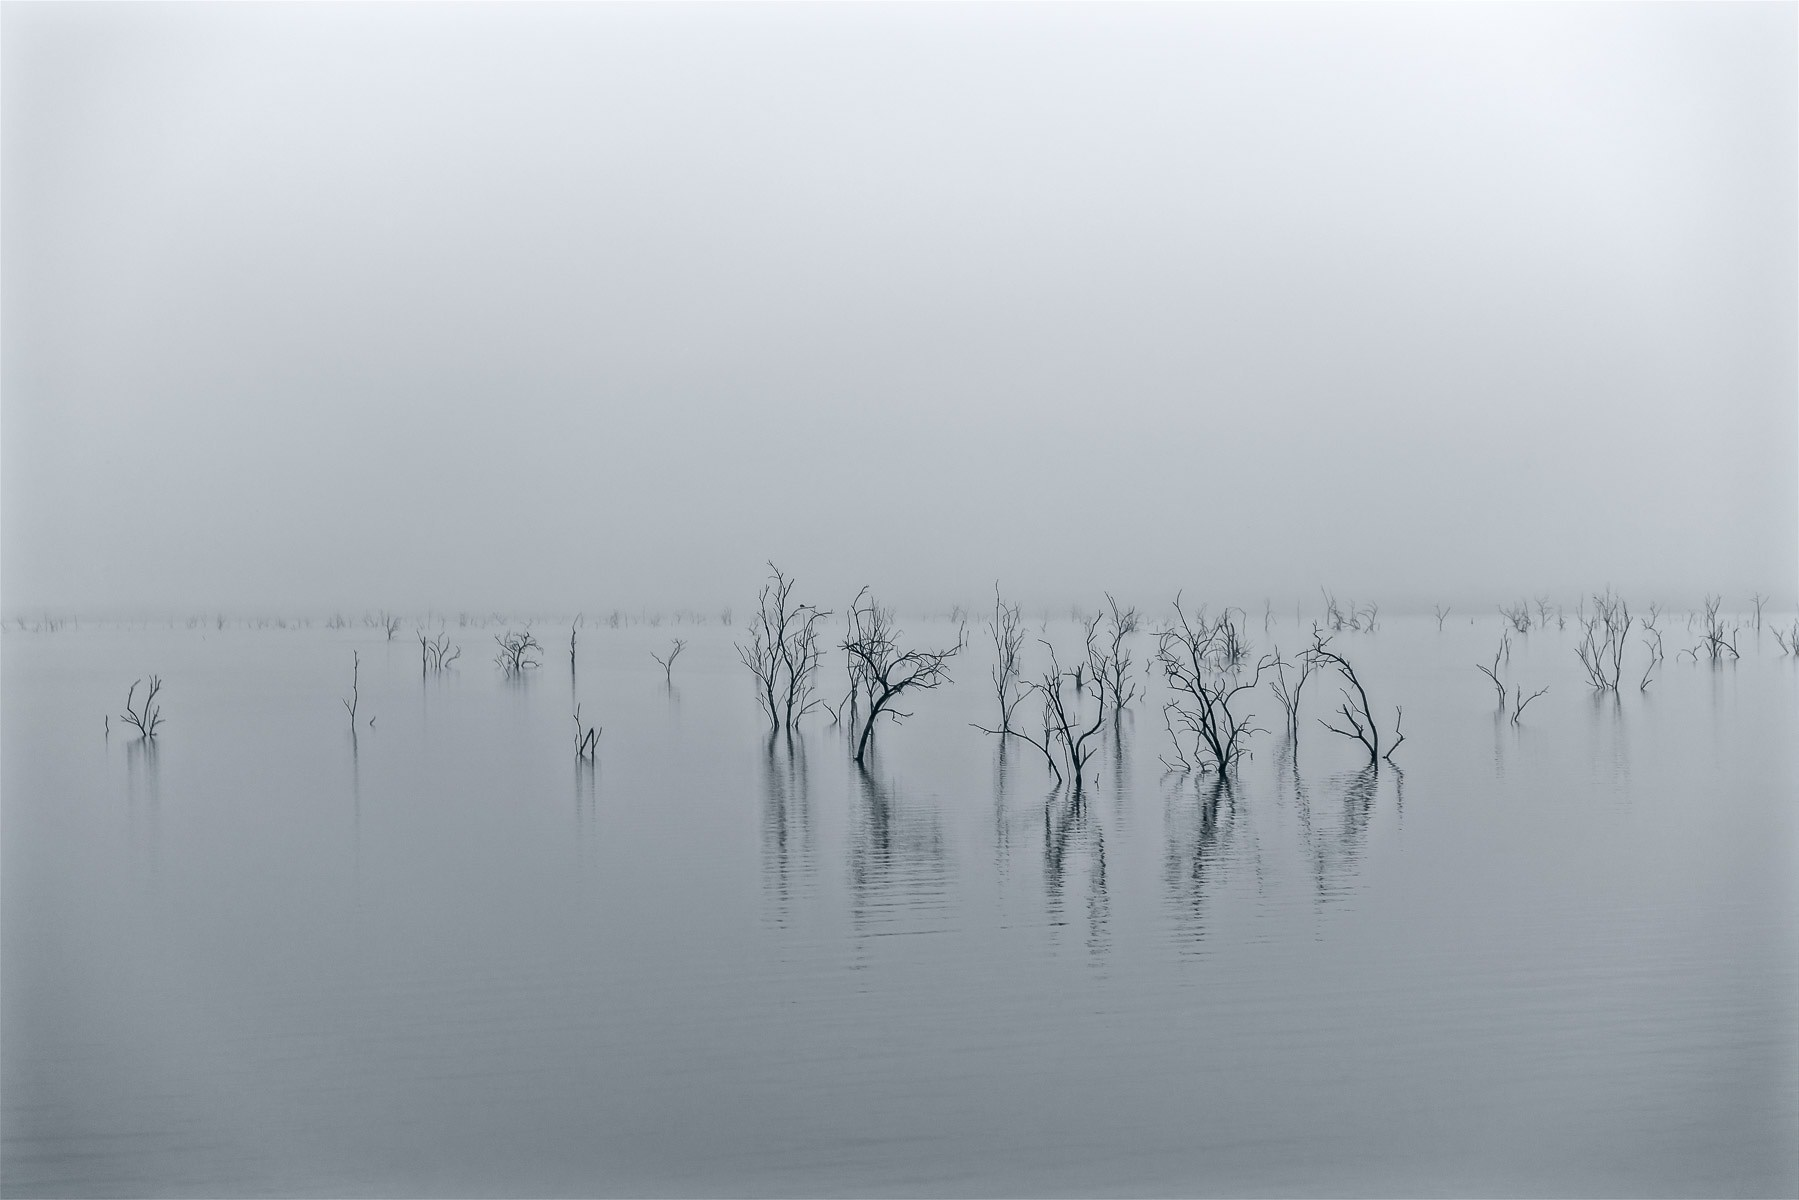 Trees reach out of North Texas' Lake Lavon on a foggy, overcast morning.